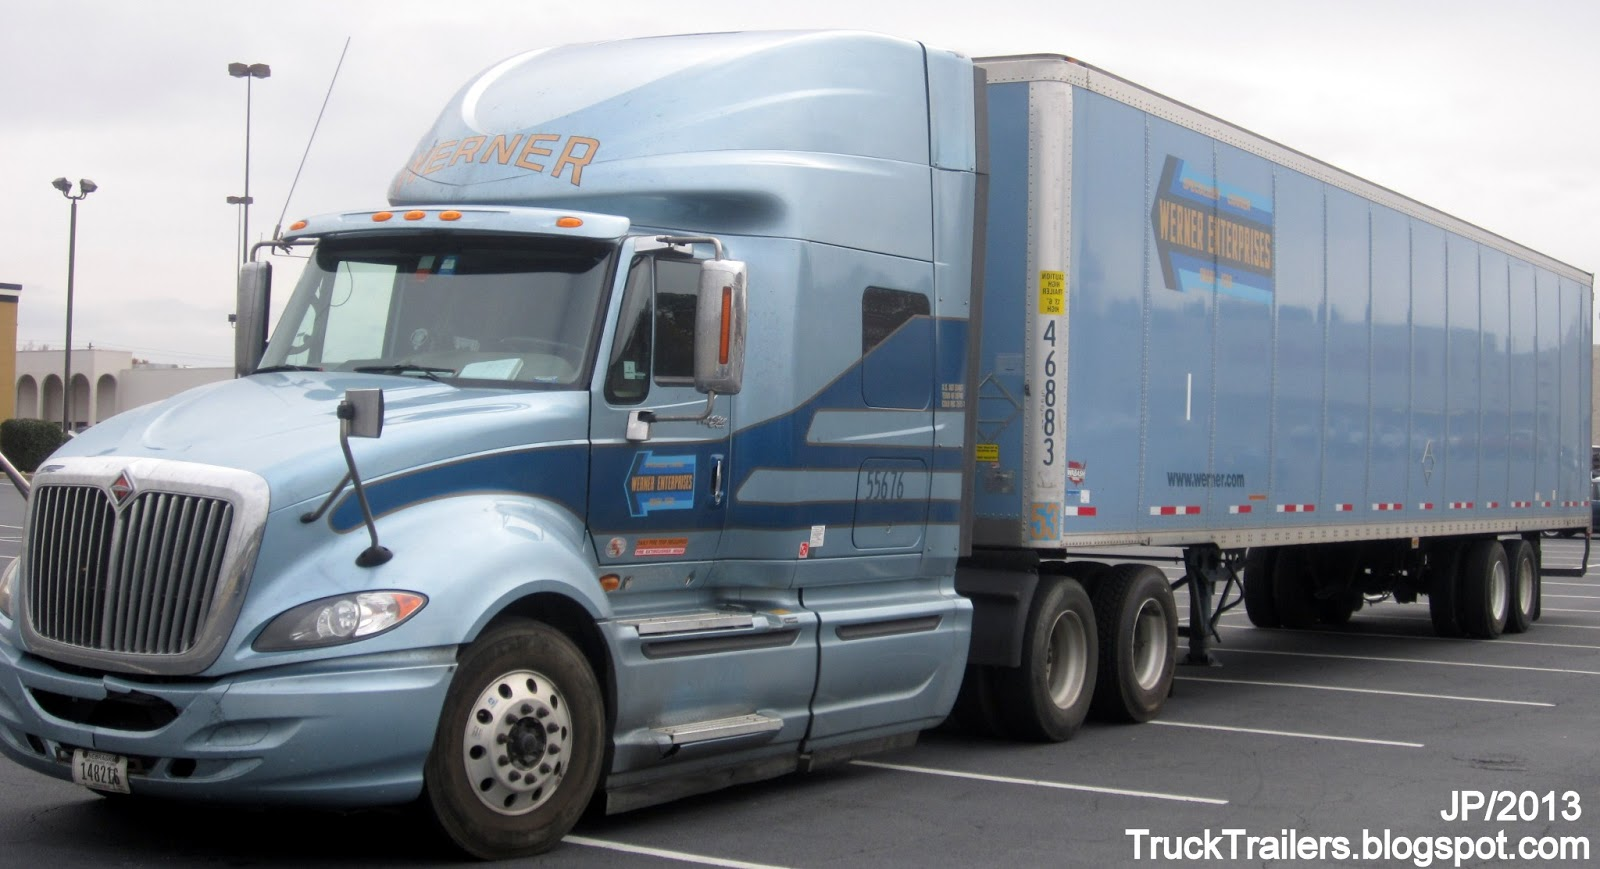 TRUCK TRAILER Transport Express Freight Logistic Diesel Mack Peterbilt Kenworth Volvo ...